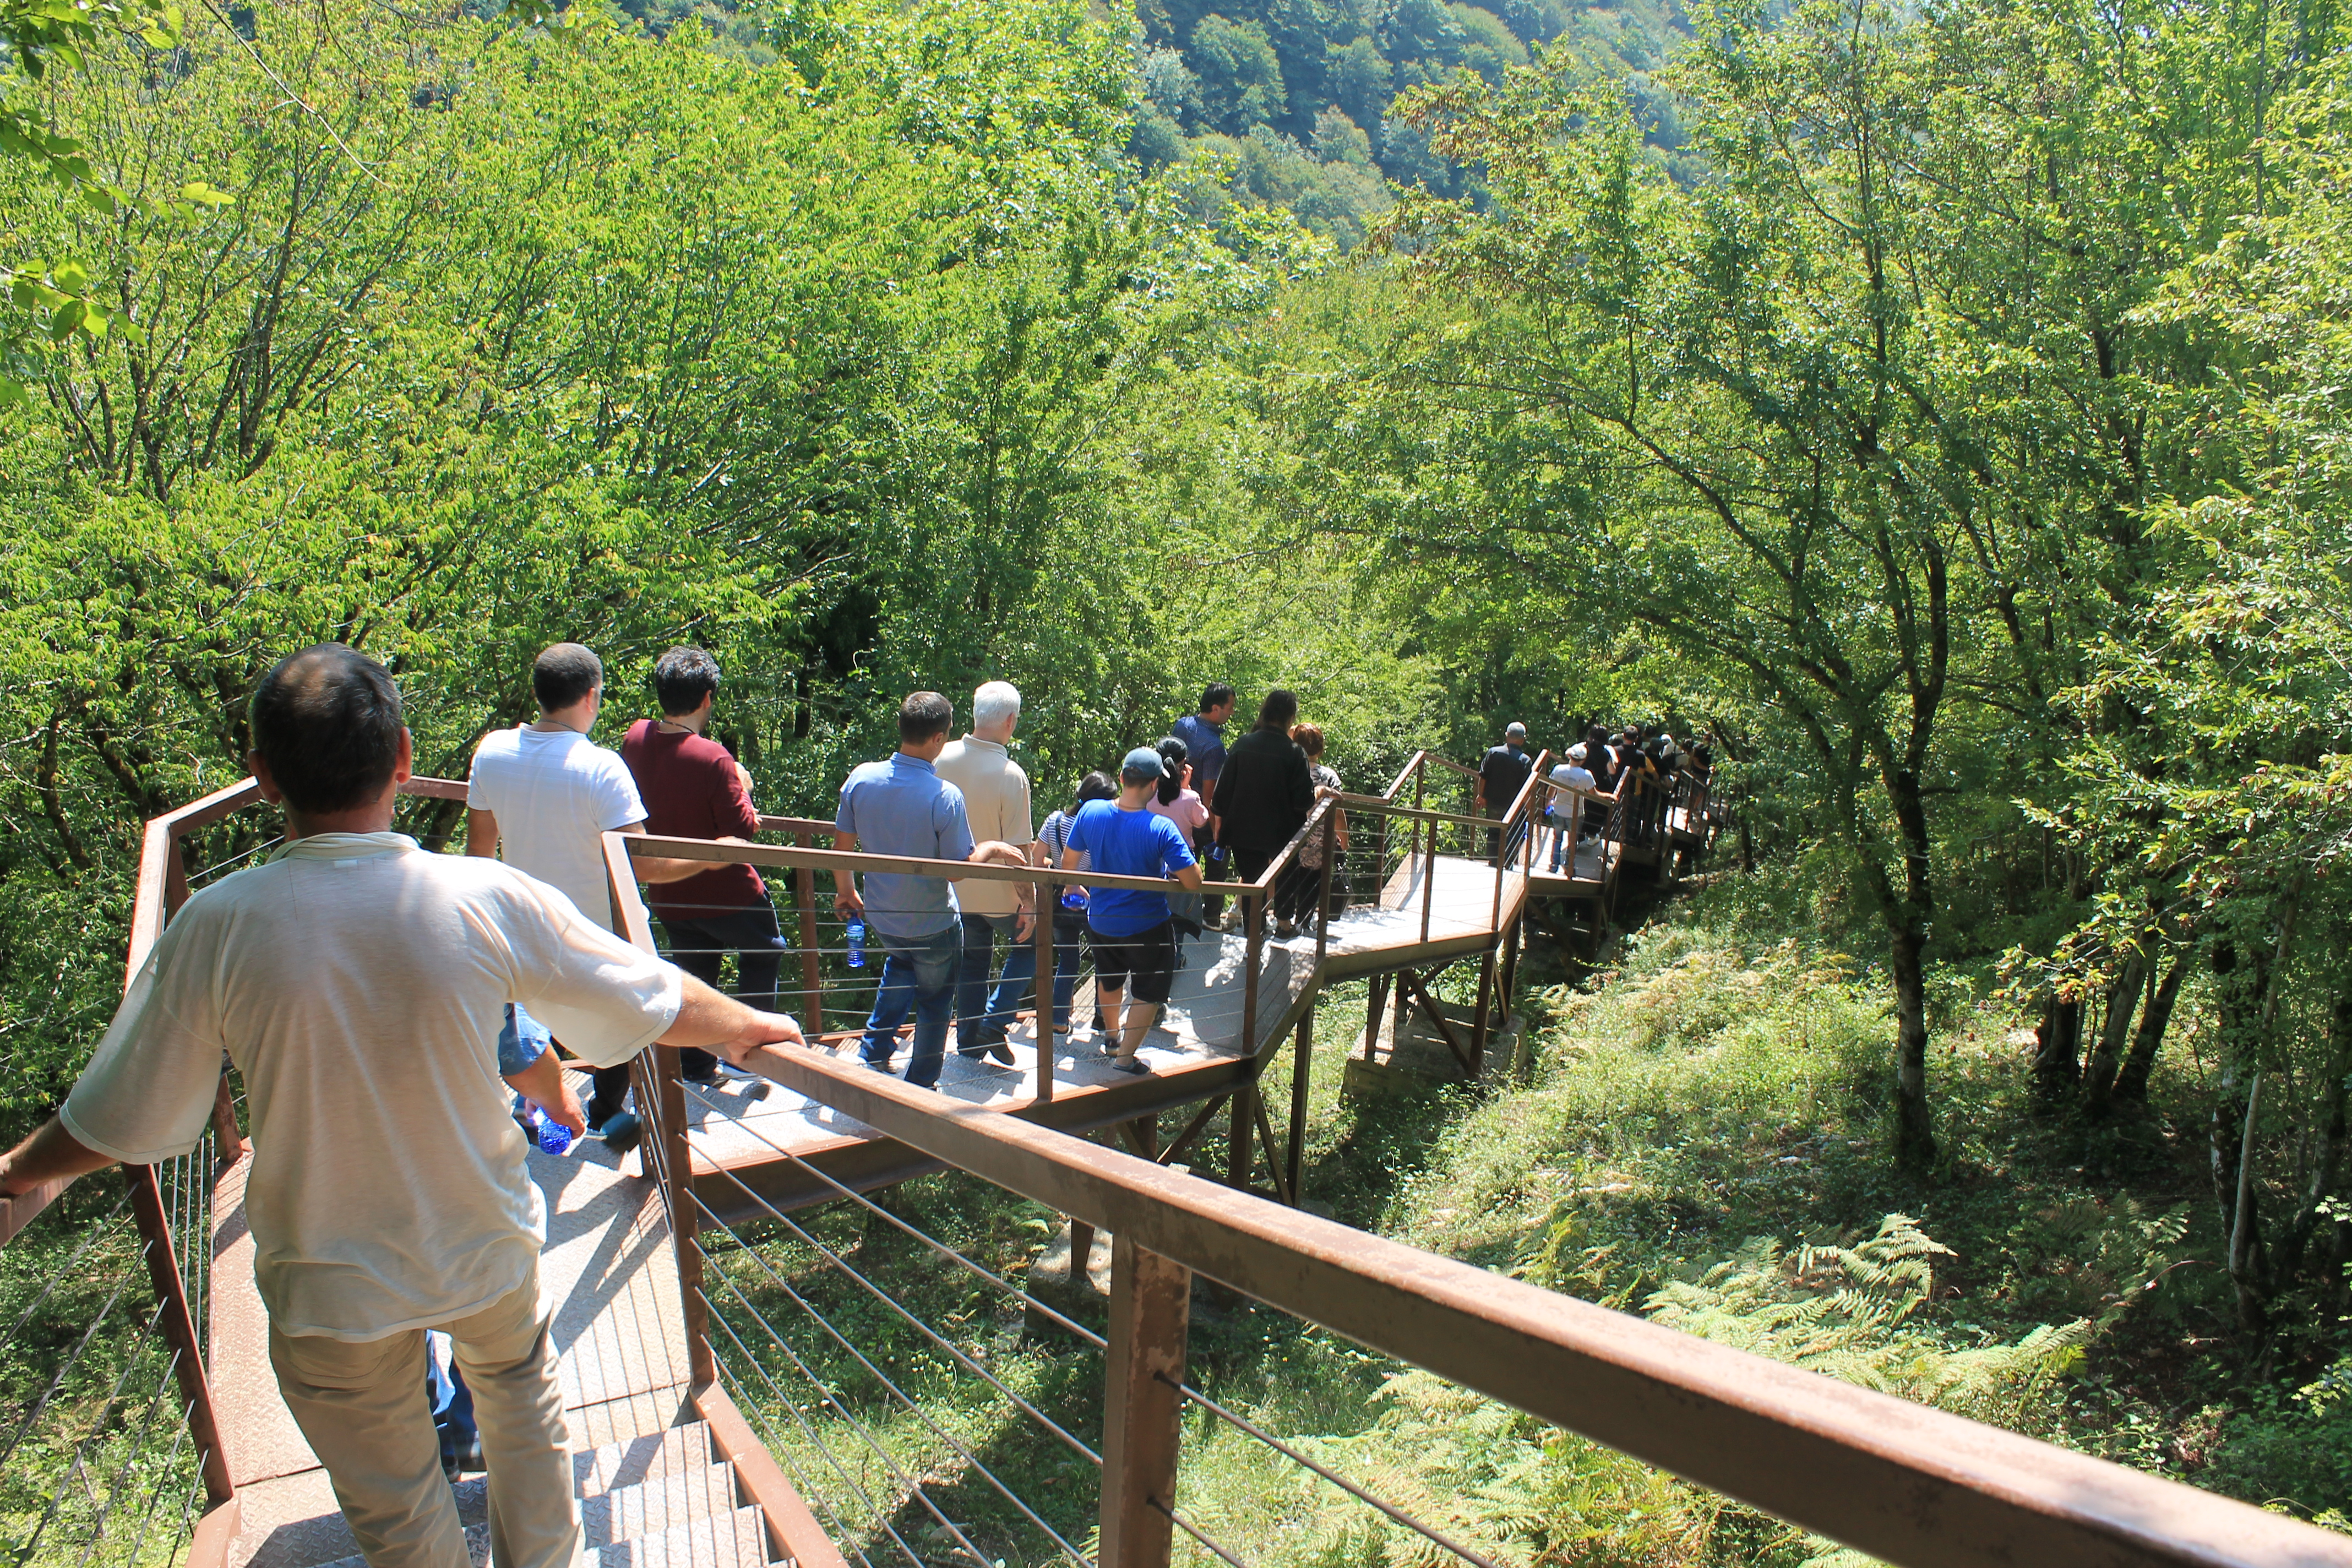 Excursion organized for former inmates in Imereti